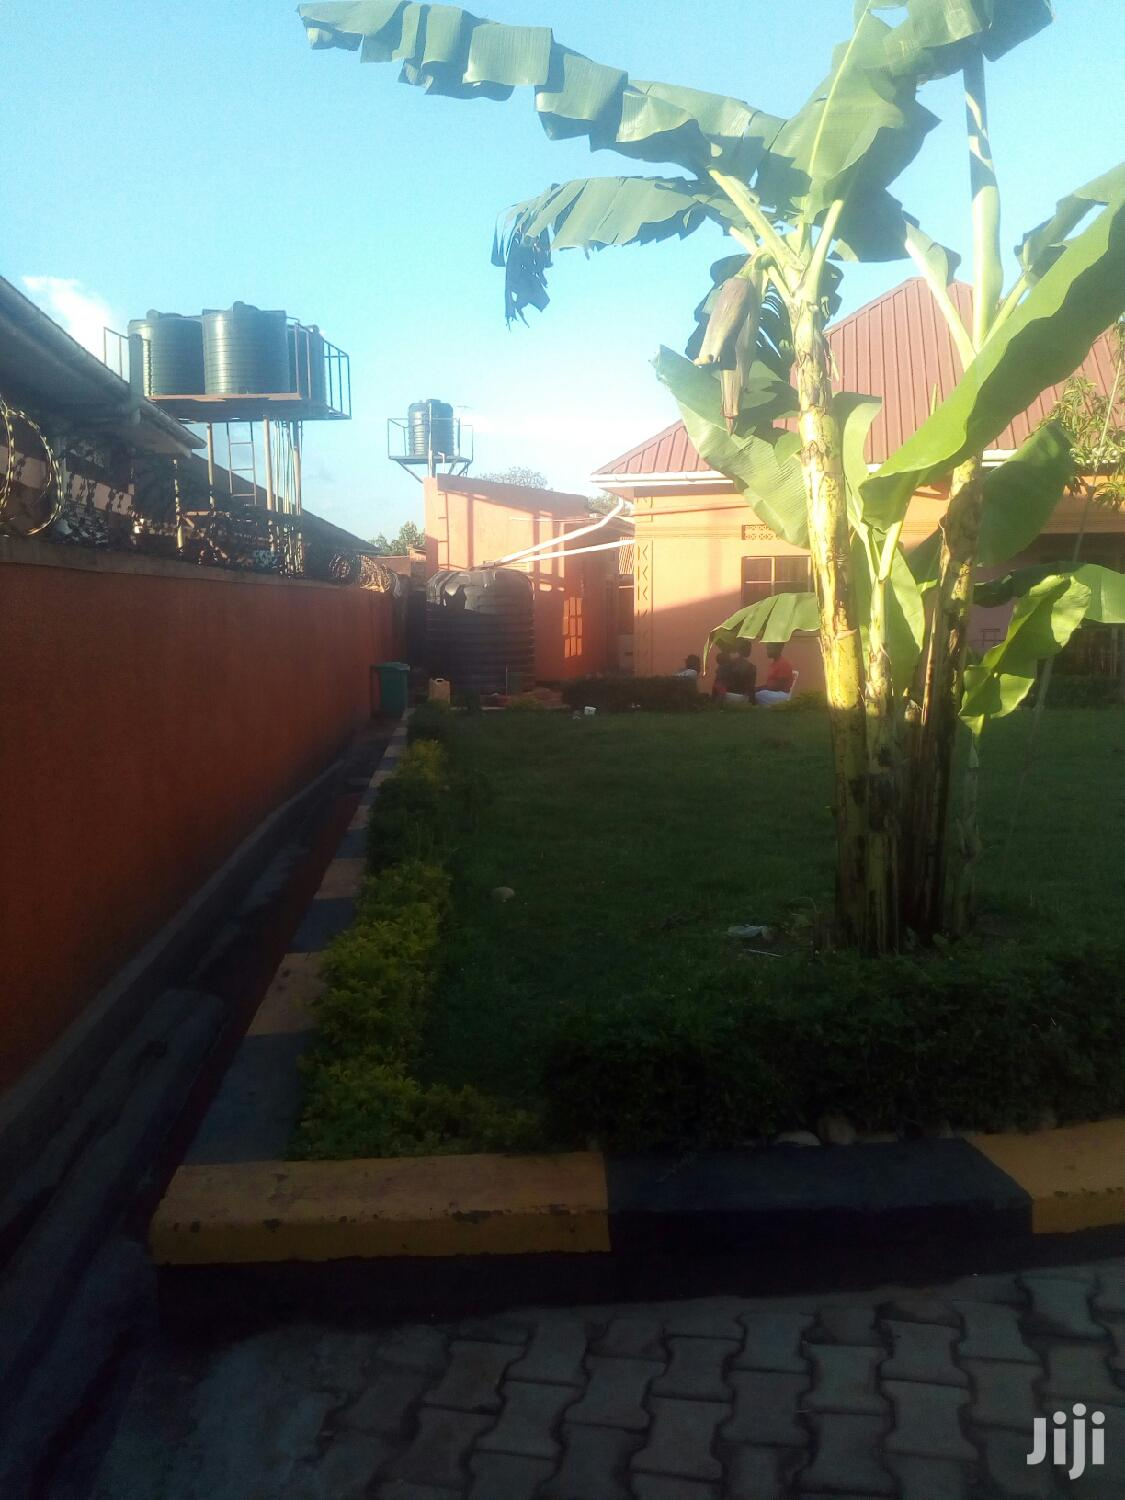 Lungunjji Rentals For Sell | Houses & Apartments For Sale for sale in Kampala, Central Region, Uganda